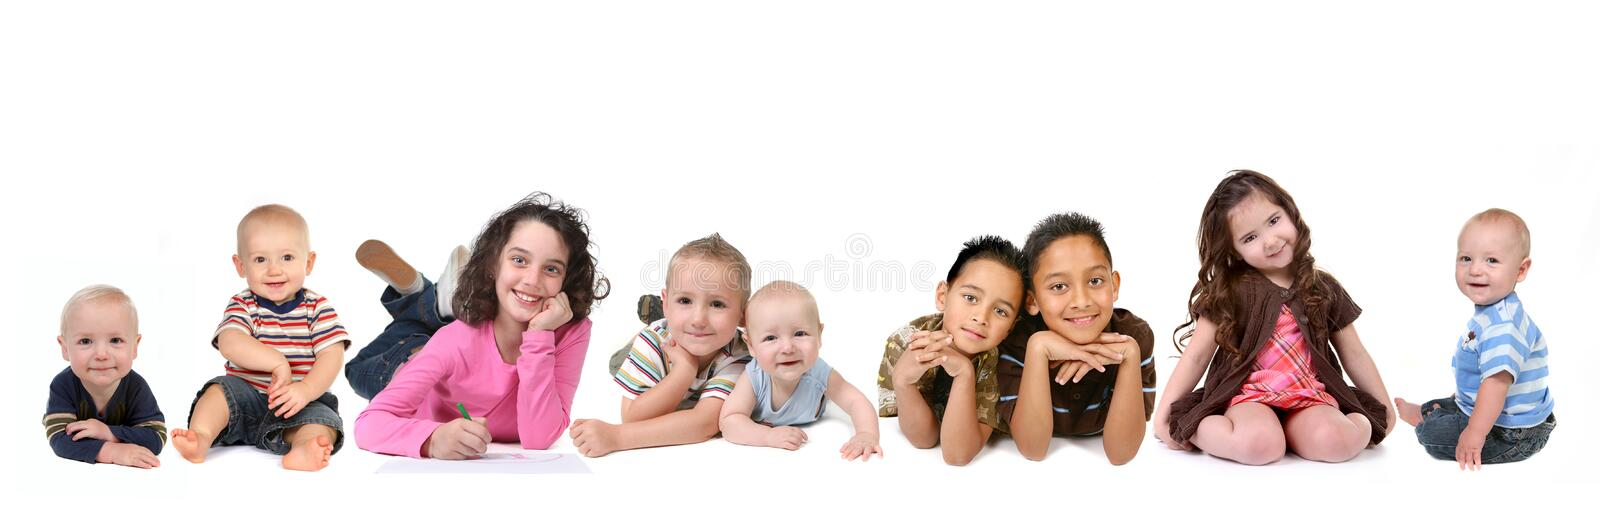 Multiple Ethnicities of Children of all Ages